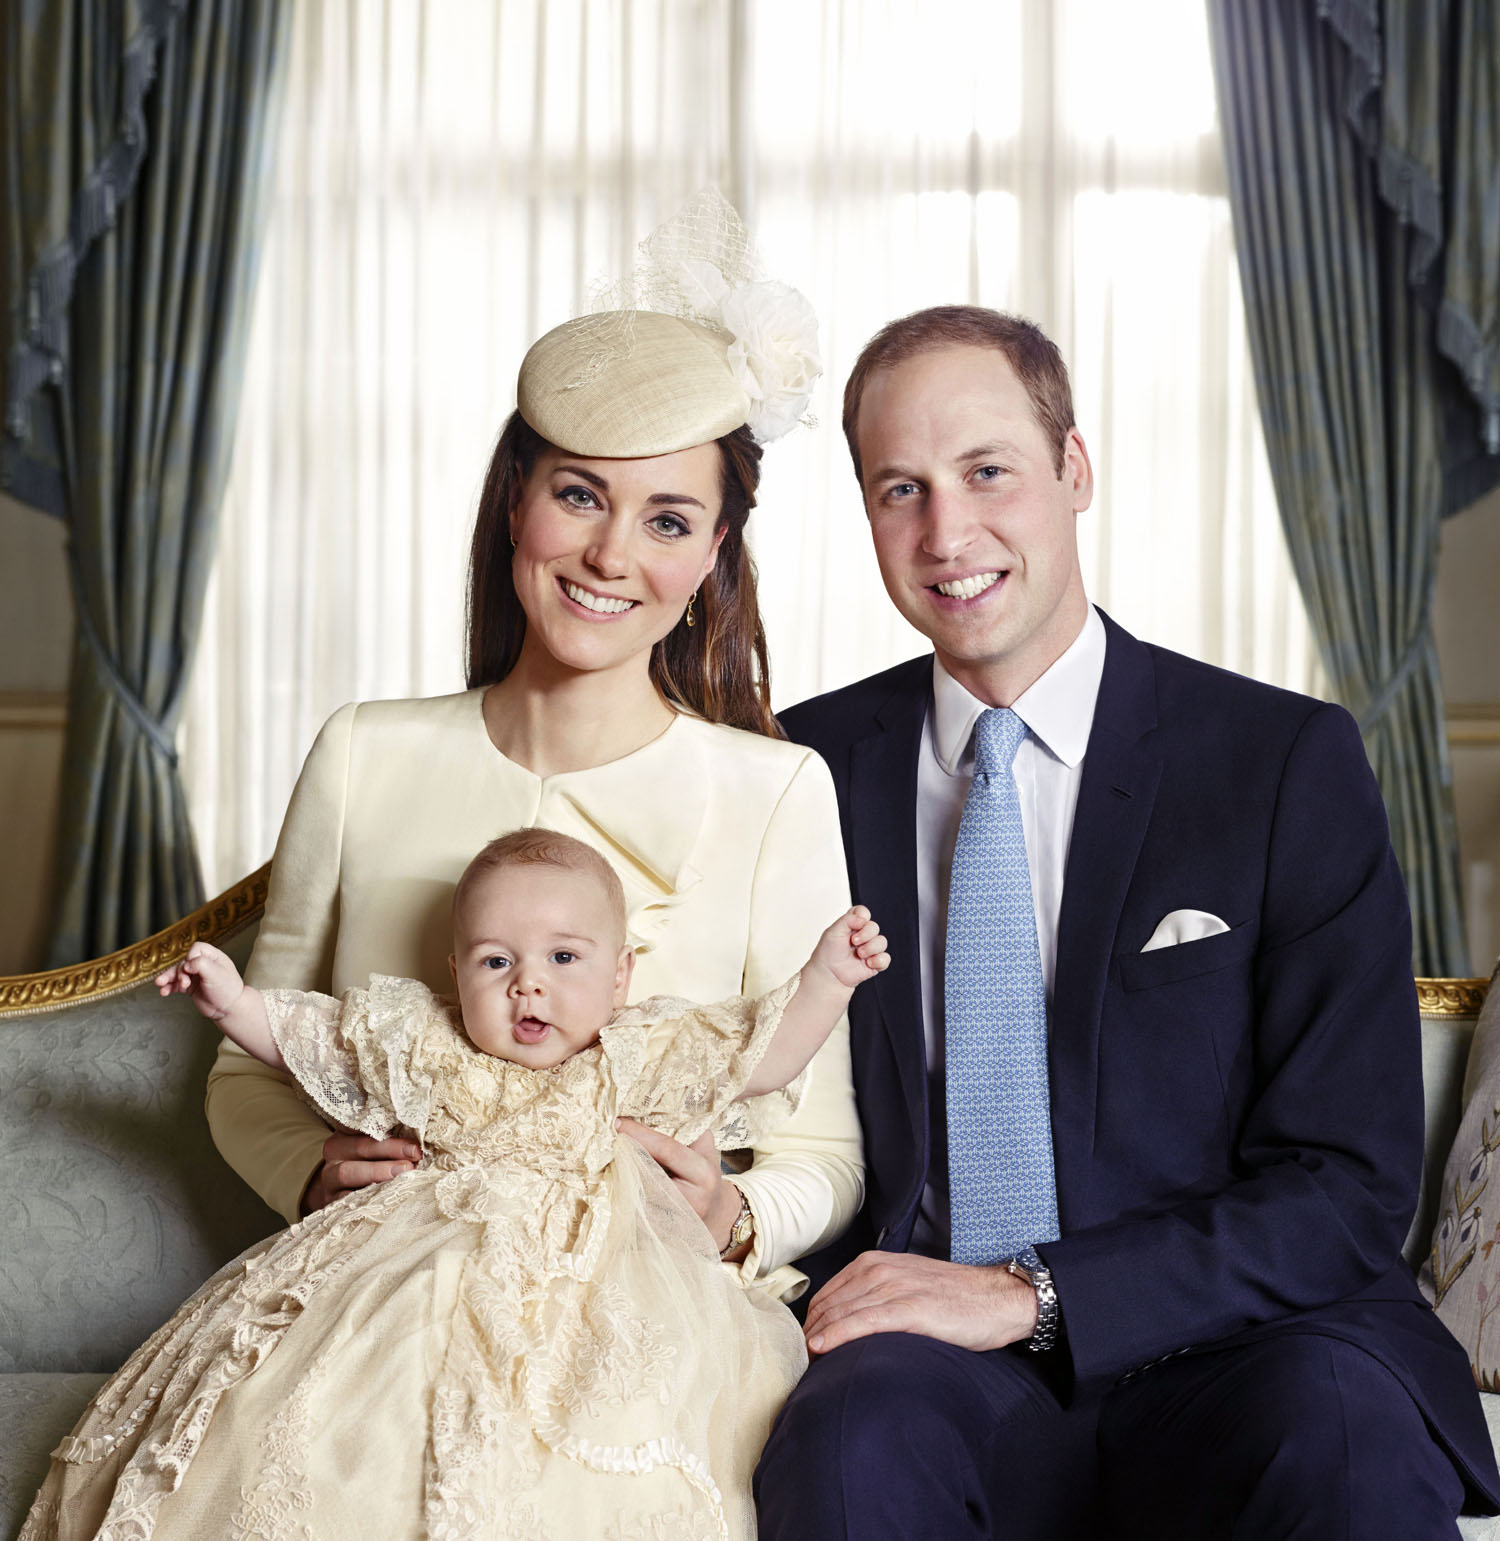 The official portrait for the christening of Prince George Alexander Louis of Cambridge, photographed at Clarence House in London on October 23, 2013. Prince George wears an outfit made of delicate Honiton lace and white satin - an exact replica of the one worn before him by every baby born to the British Royal family since 1841.